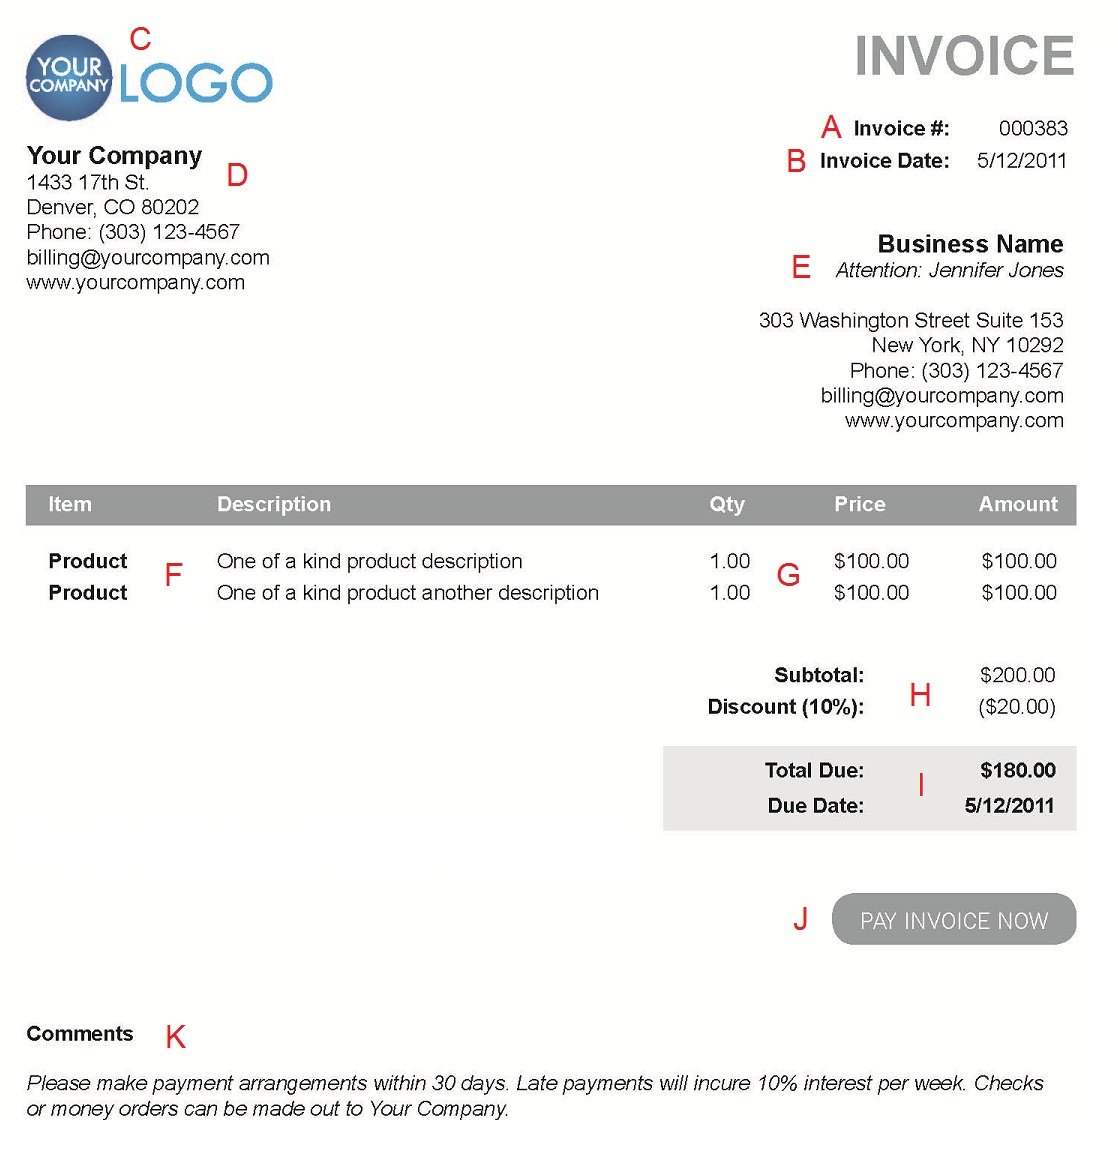 Hucareus  Marvellous The  Different Sections Of An Electronic Payment Invoice With Fetching A  With Charming Invoice Presentment Also How To Find Out Dealer Invoice In Addition Create Online Invoices And Create Invoice For Free As Well As Automatic Invoicing Additionally Gmc Invoice From Paysimplecom With Hucareus  Fetching The  Different Sections Of An Electronic Payment Invoice With Charming A  And Marvellous Invoice Presentment Also How To Find Out Dealer Invoice In Addition Create Online Invoices From Paysimplecom